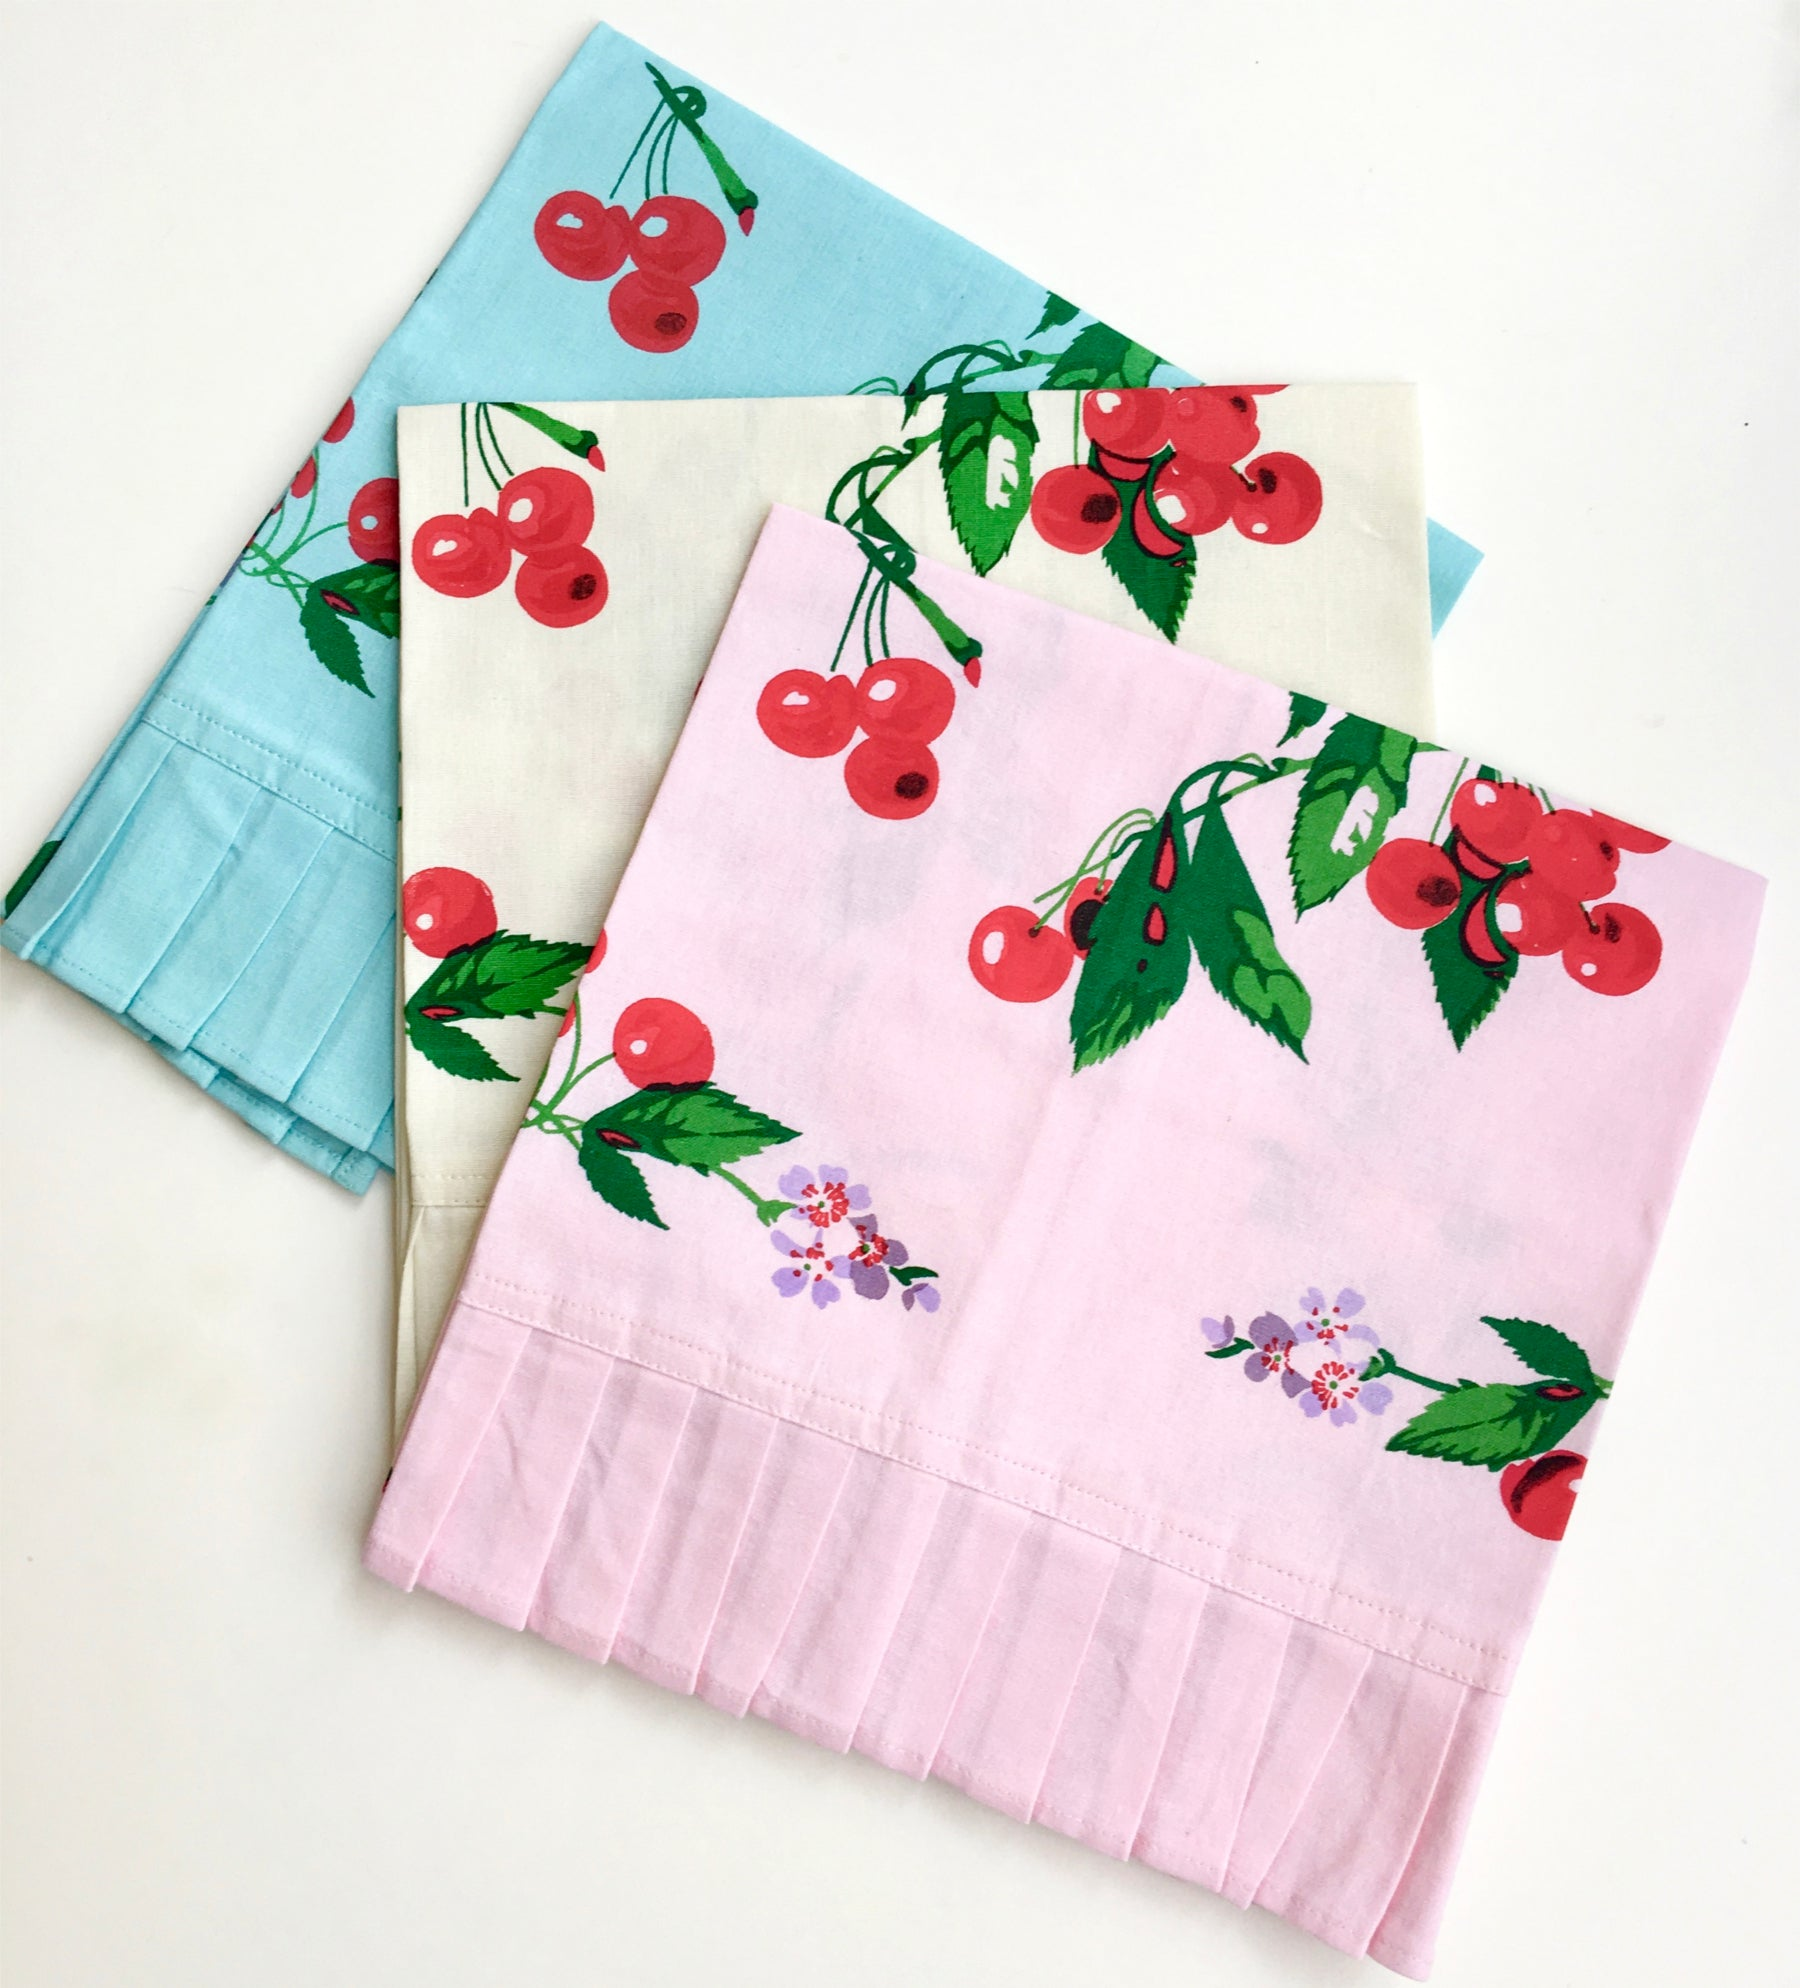 Retro Cherry Tea Towel - Teal